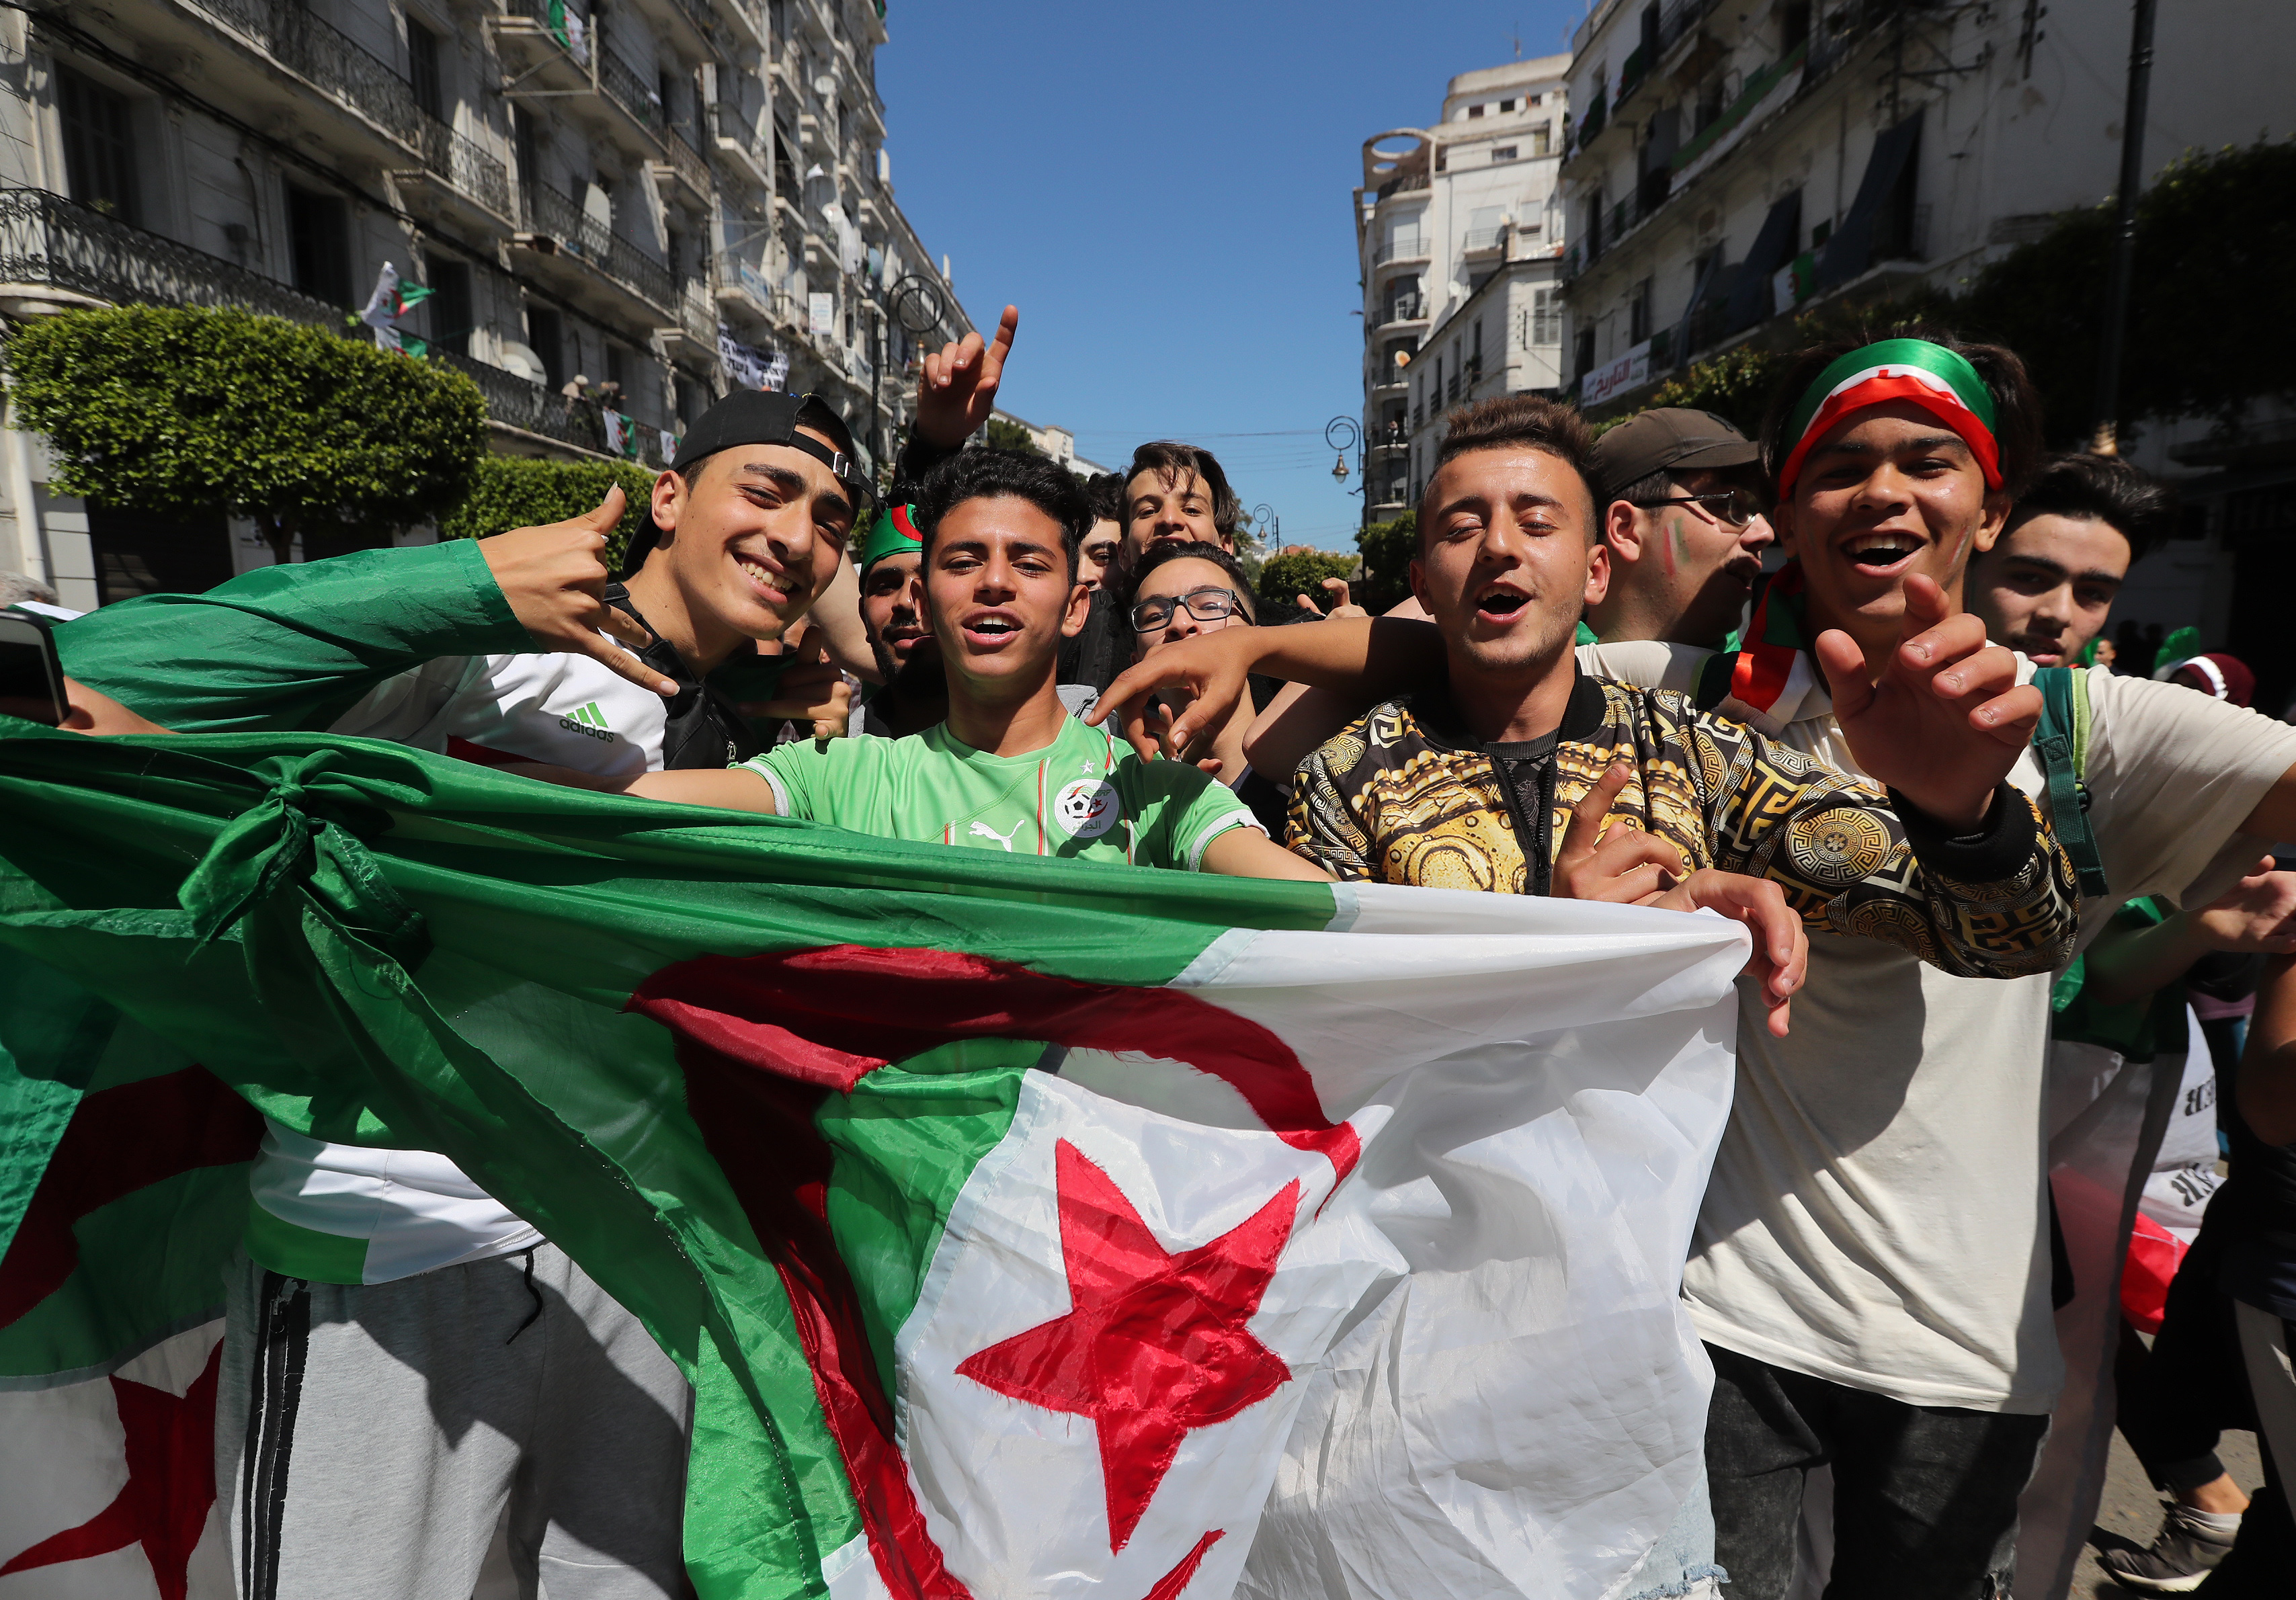 Bouteflika Steps Aside as Algerians Push to Reclaim and Own Their History